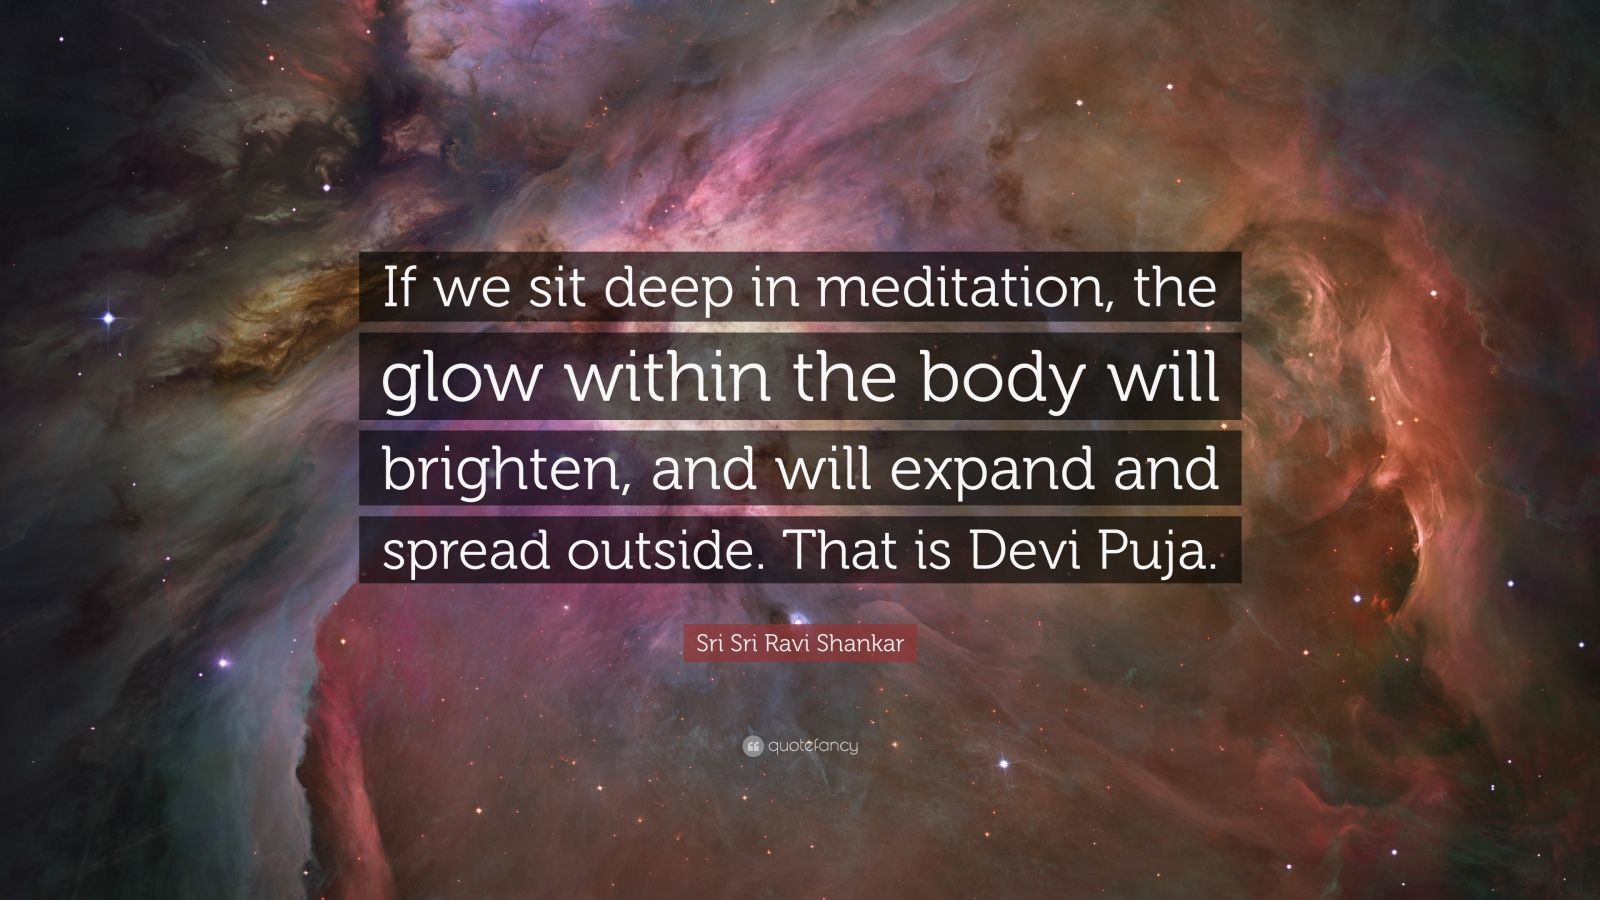 """Sri Sri Ravi Shankar Quote: """"If we sit deep in meditation, the glow within the body will brighten, and will expand and spread outside. That is Devi Puja."""""""